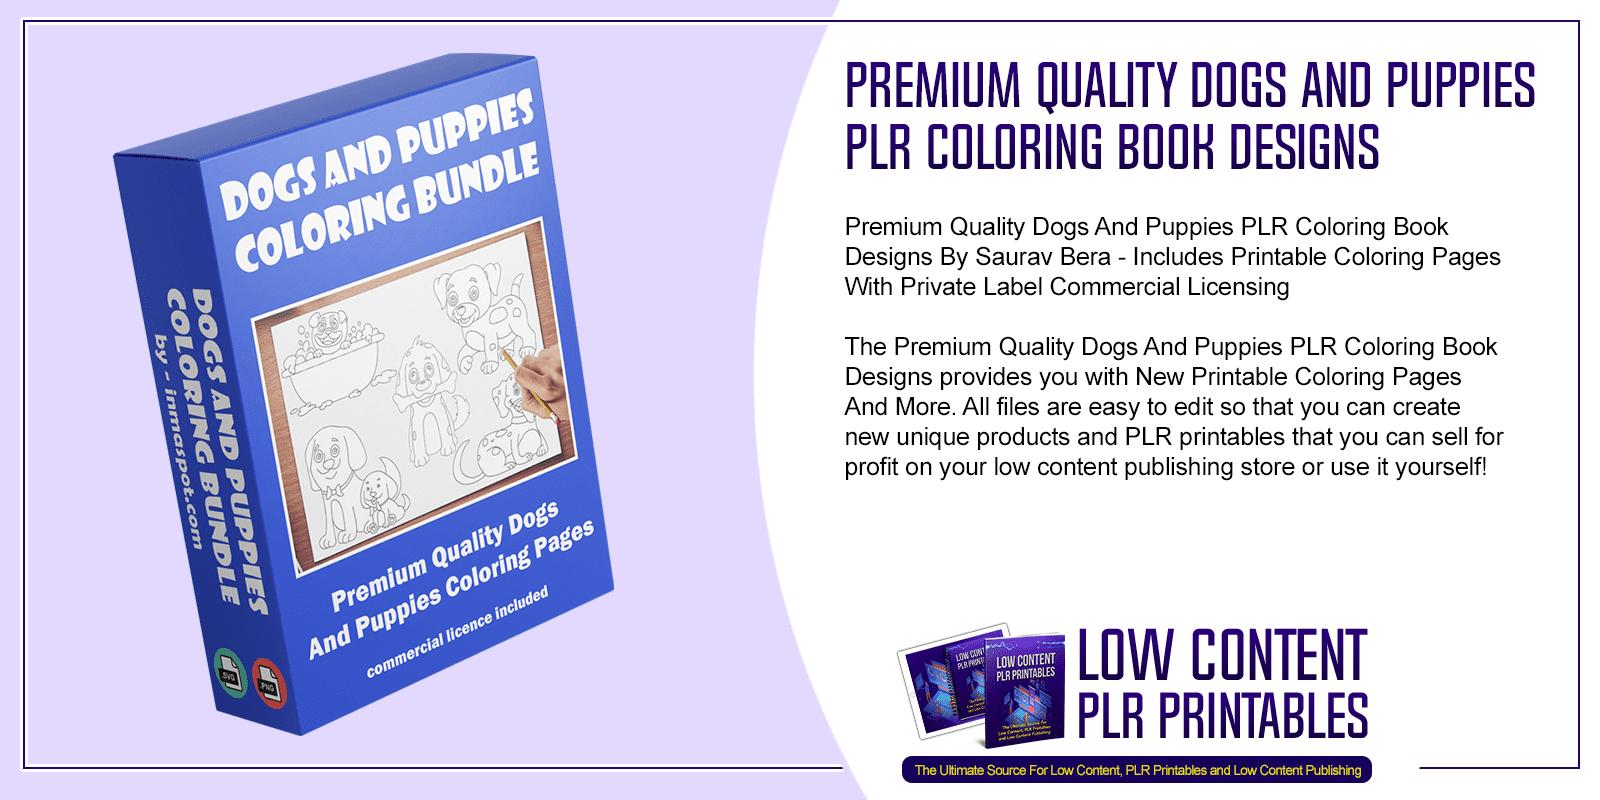 Premium Quality Dogs And Puppies PLR Coloring Book Designs